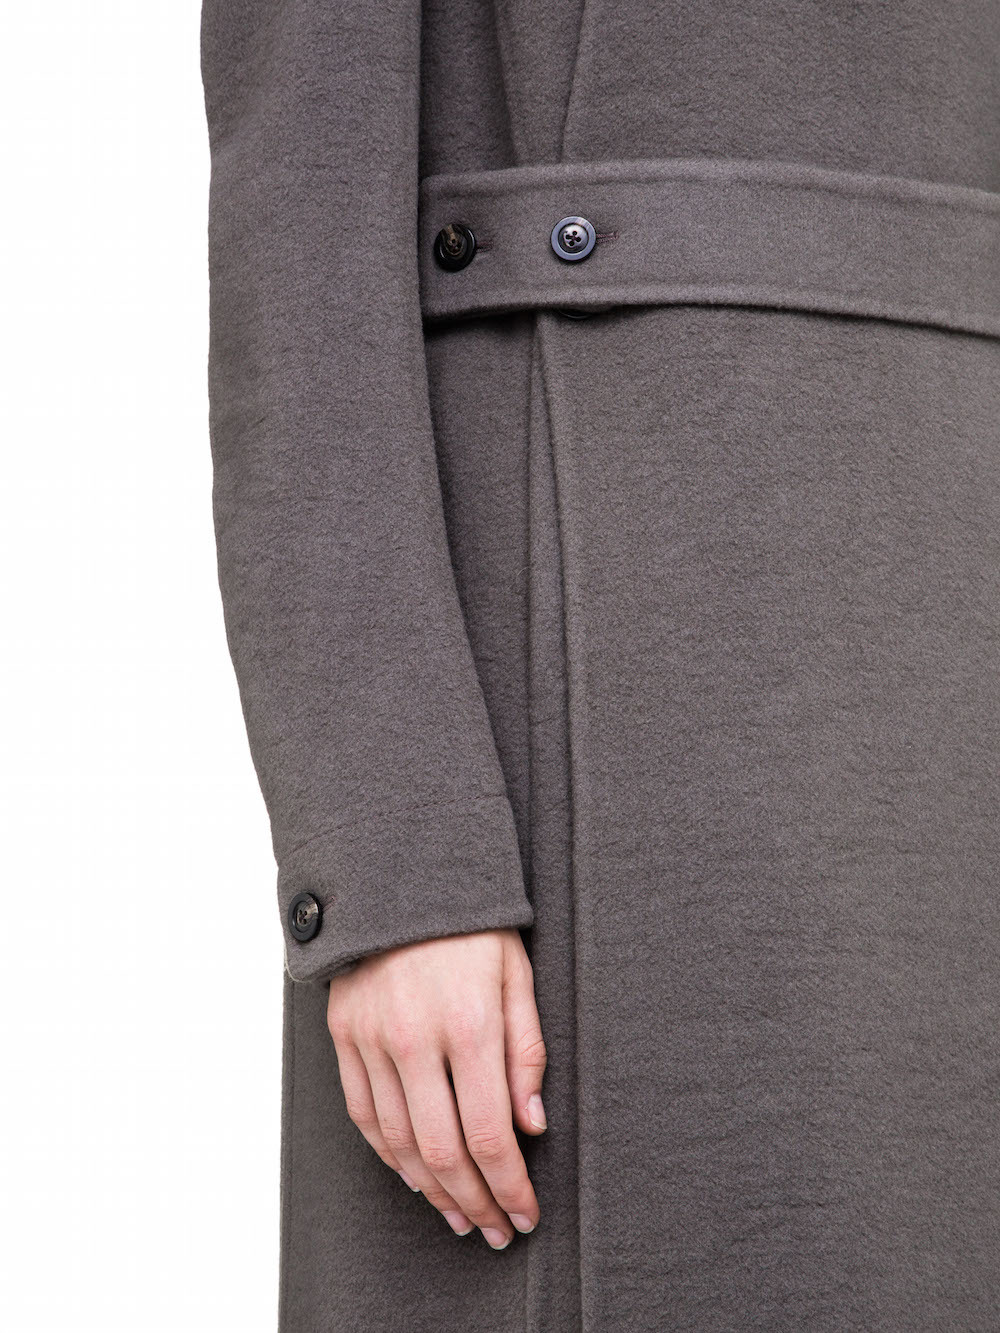 RICK OWENS WOMENS FALL WINTER COAT IN GREY CASHMERE